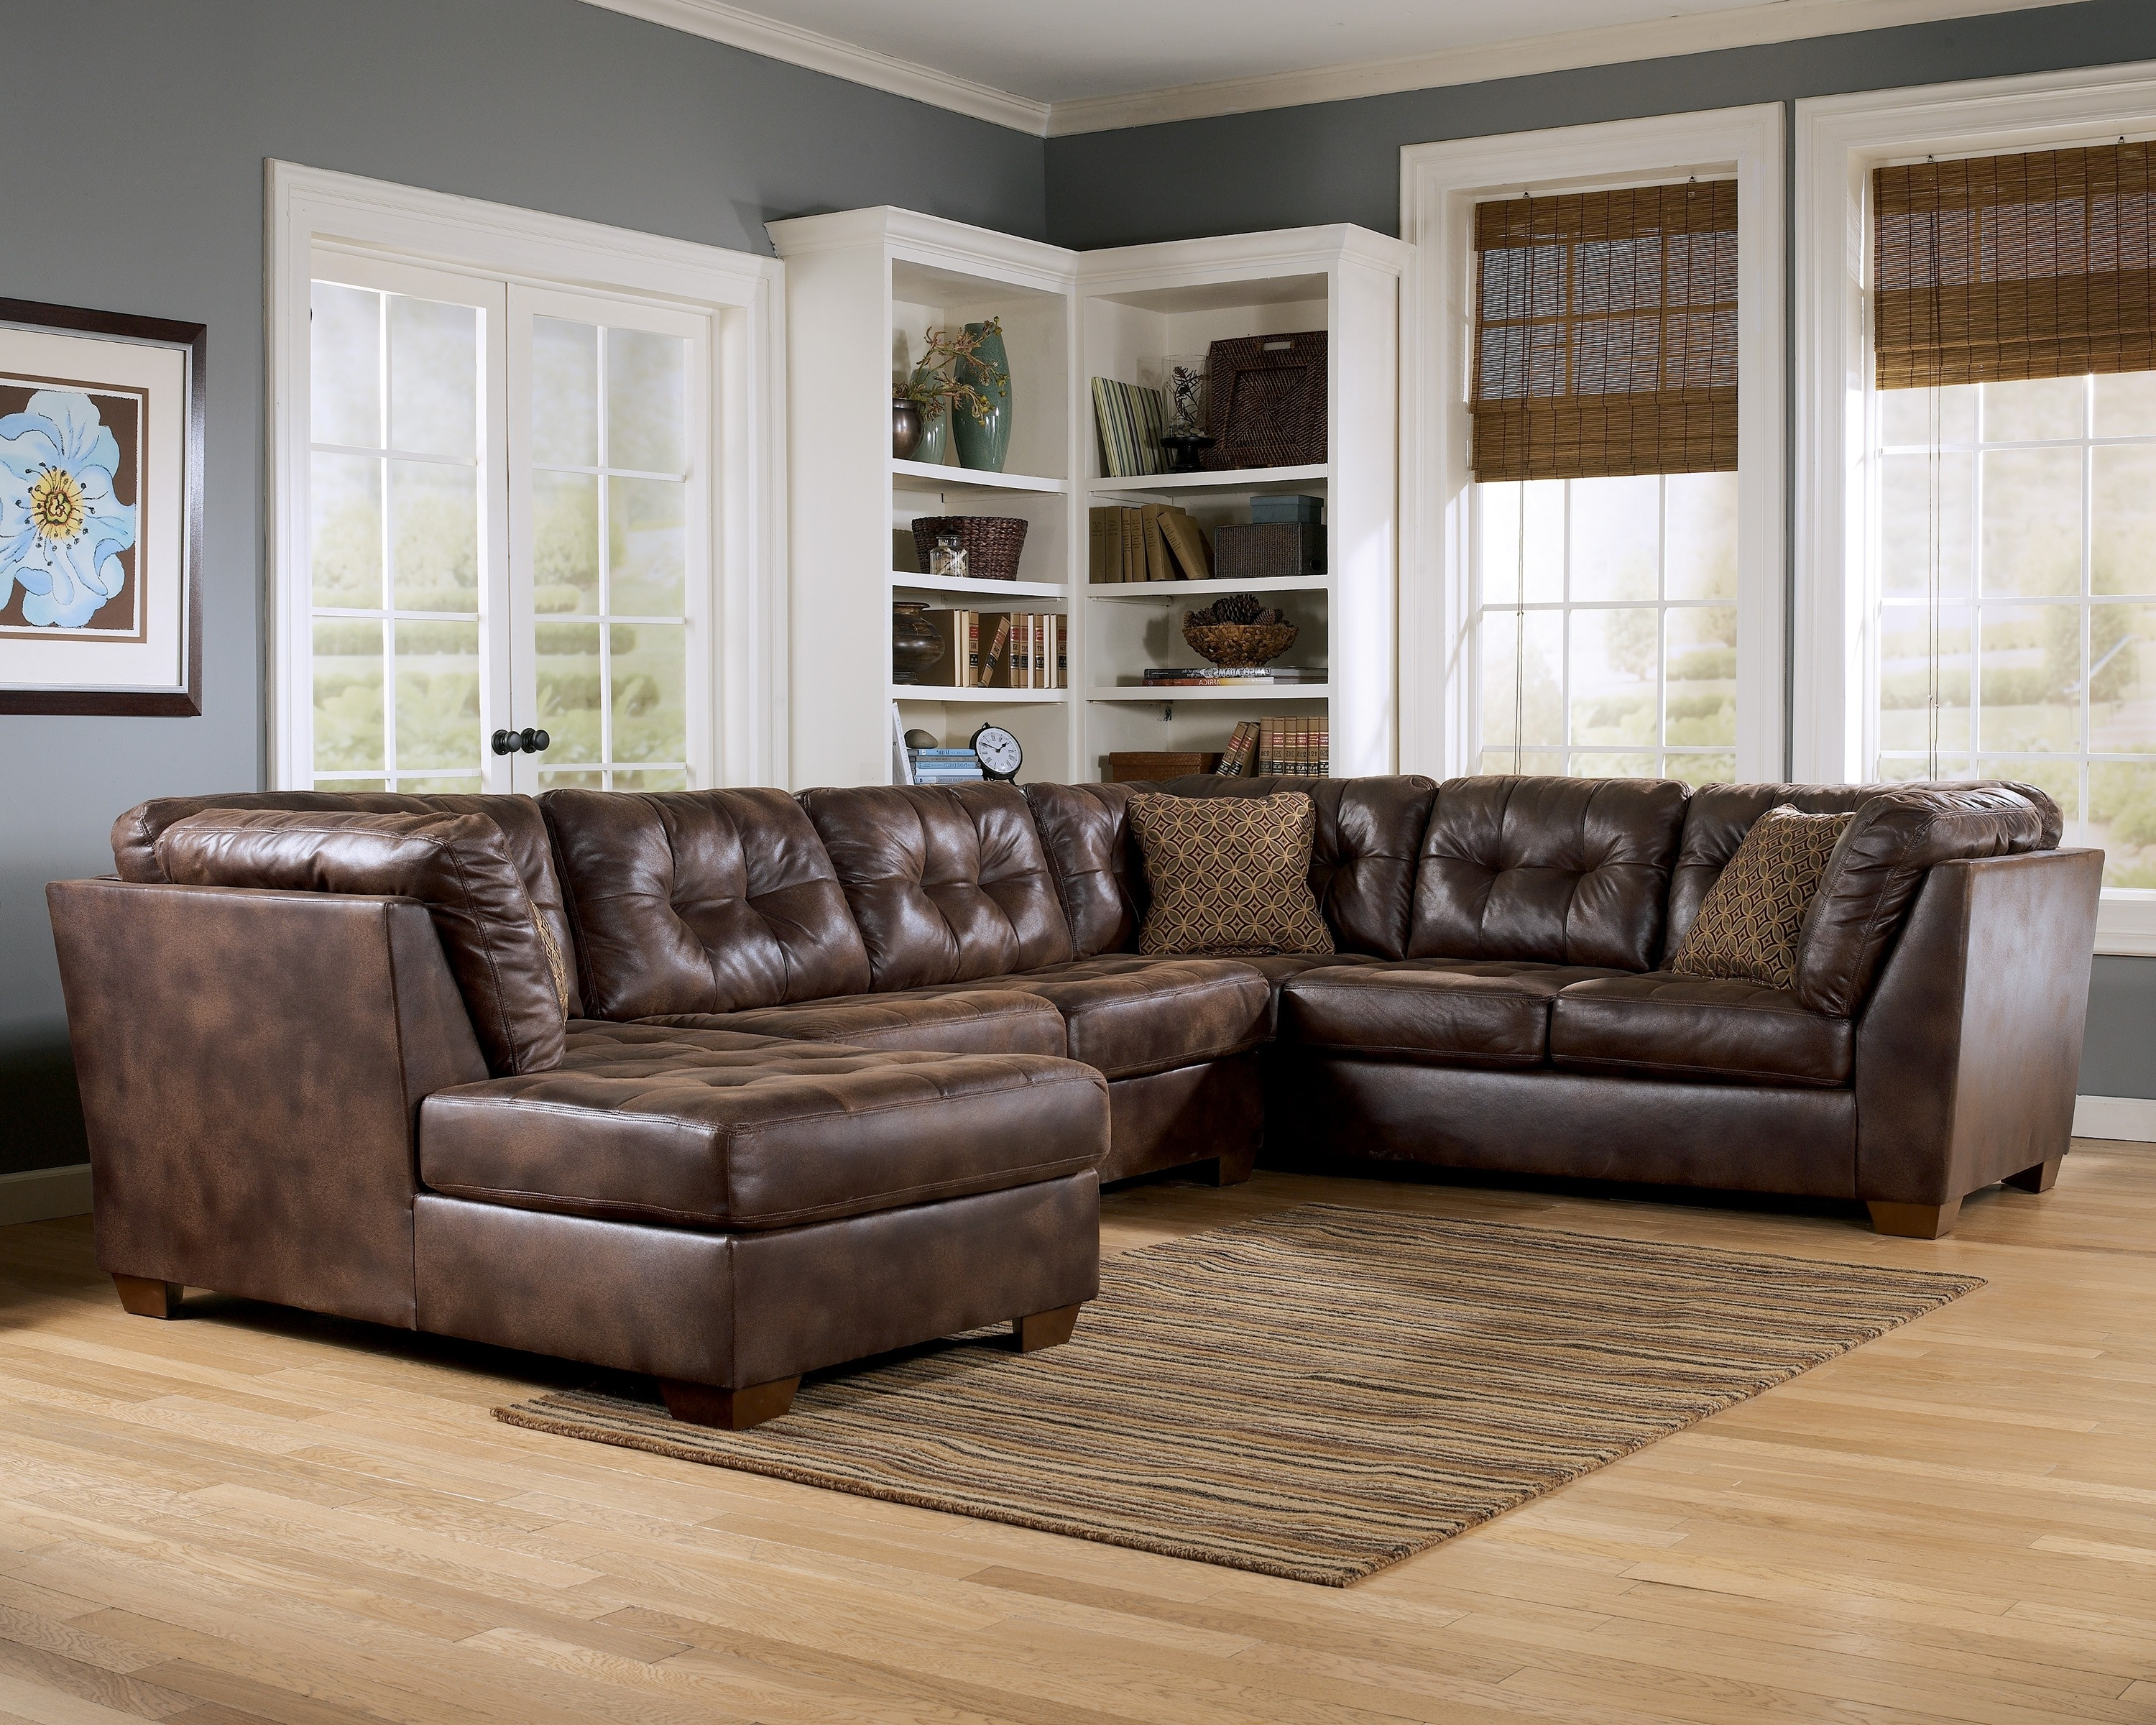 Preferred Chocolate Brown Sectional Sofas Throughout Best Chocolate Brown Sectional Sofas 16 For Jonathan Louis (View 17 of 20)